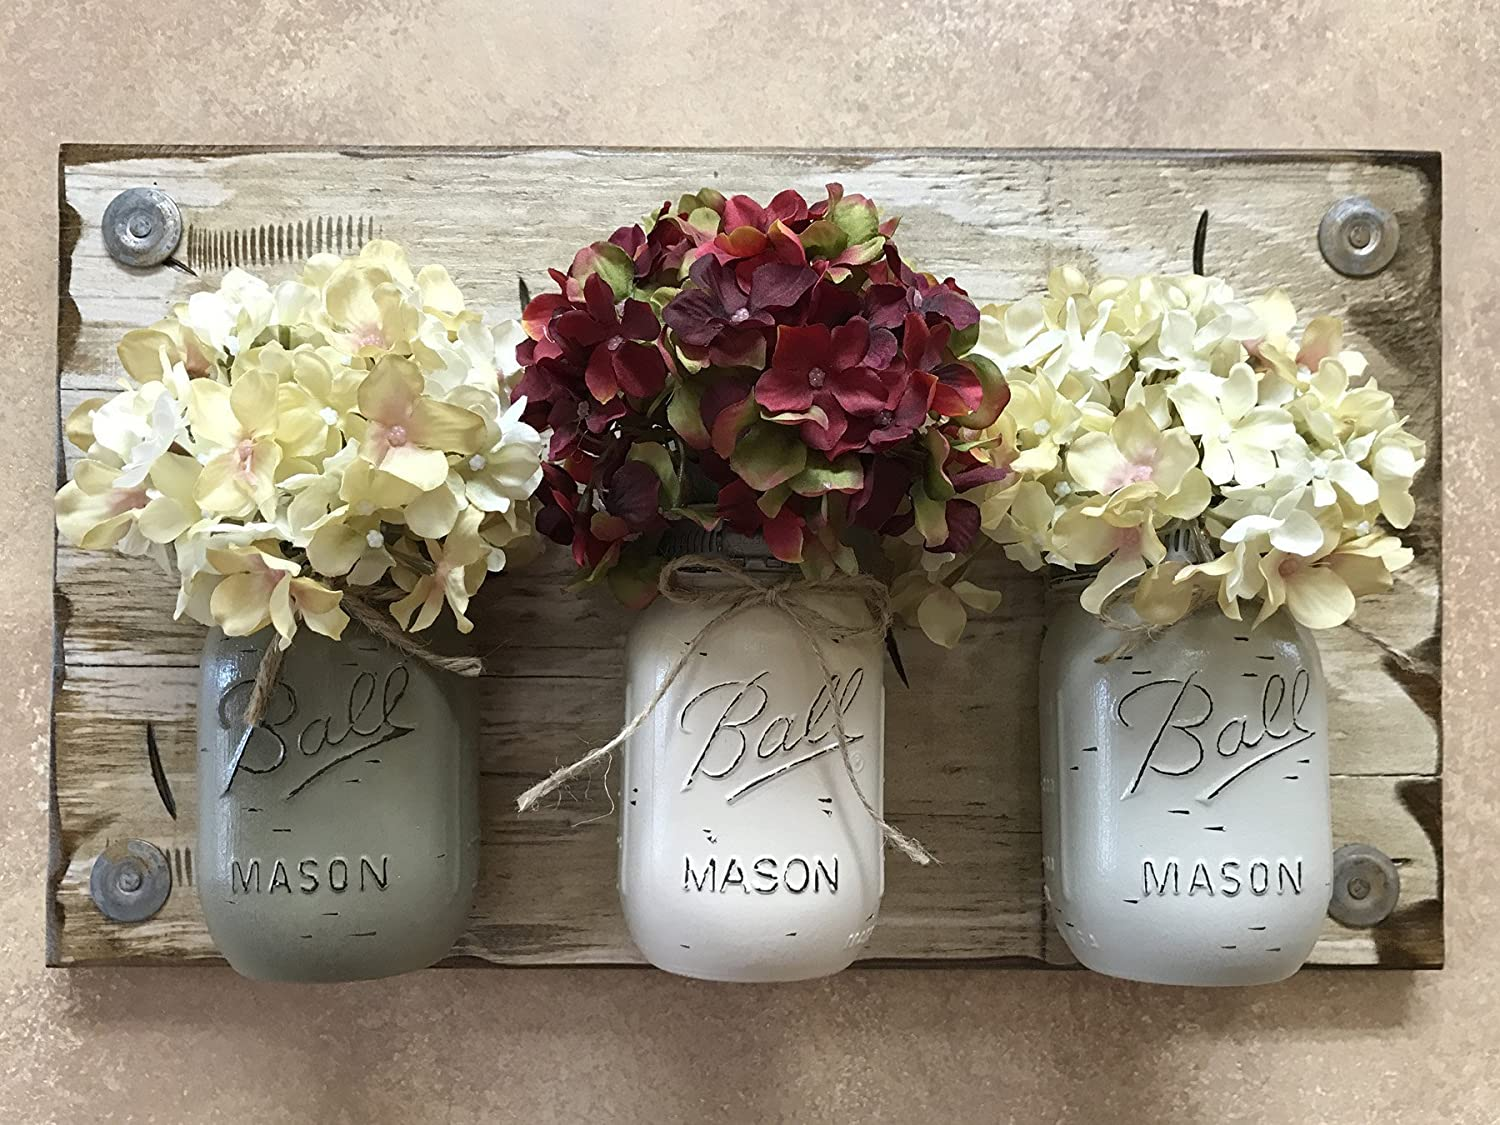 -PEWTER Green Mason JAR Caddy with 3 Ball Pint Canning Jars on Wood Antique White Wall Sconce -Kitchen Decor Utensil Holder Distressed Rustic -Flowers Pictured THISTLE Painted Jar Optional CREAM